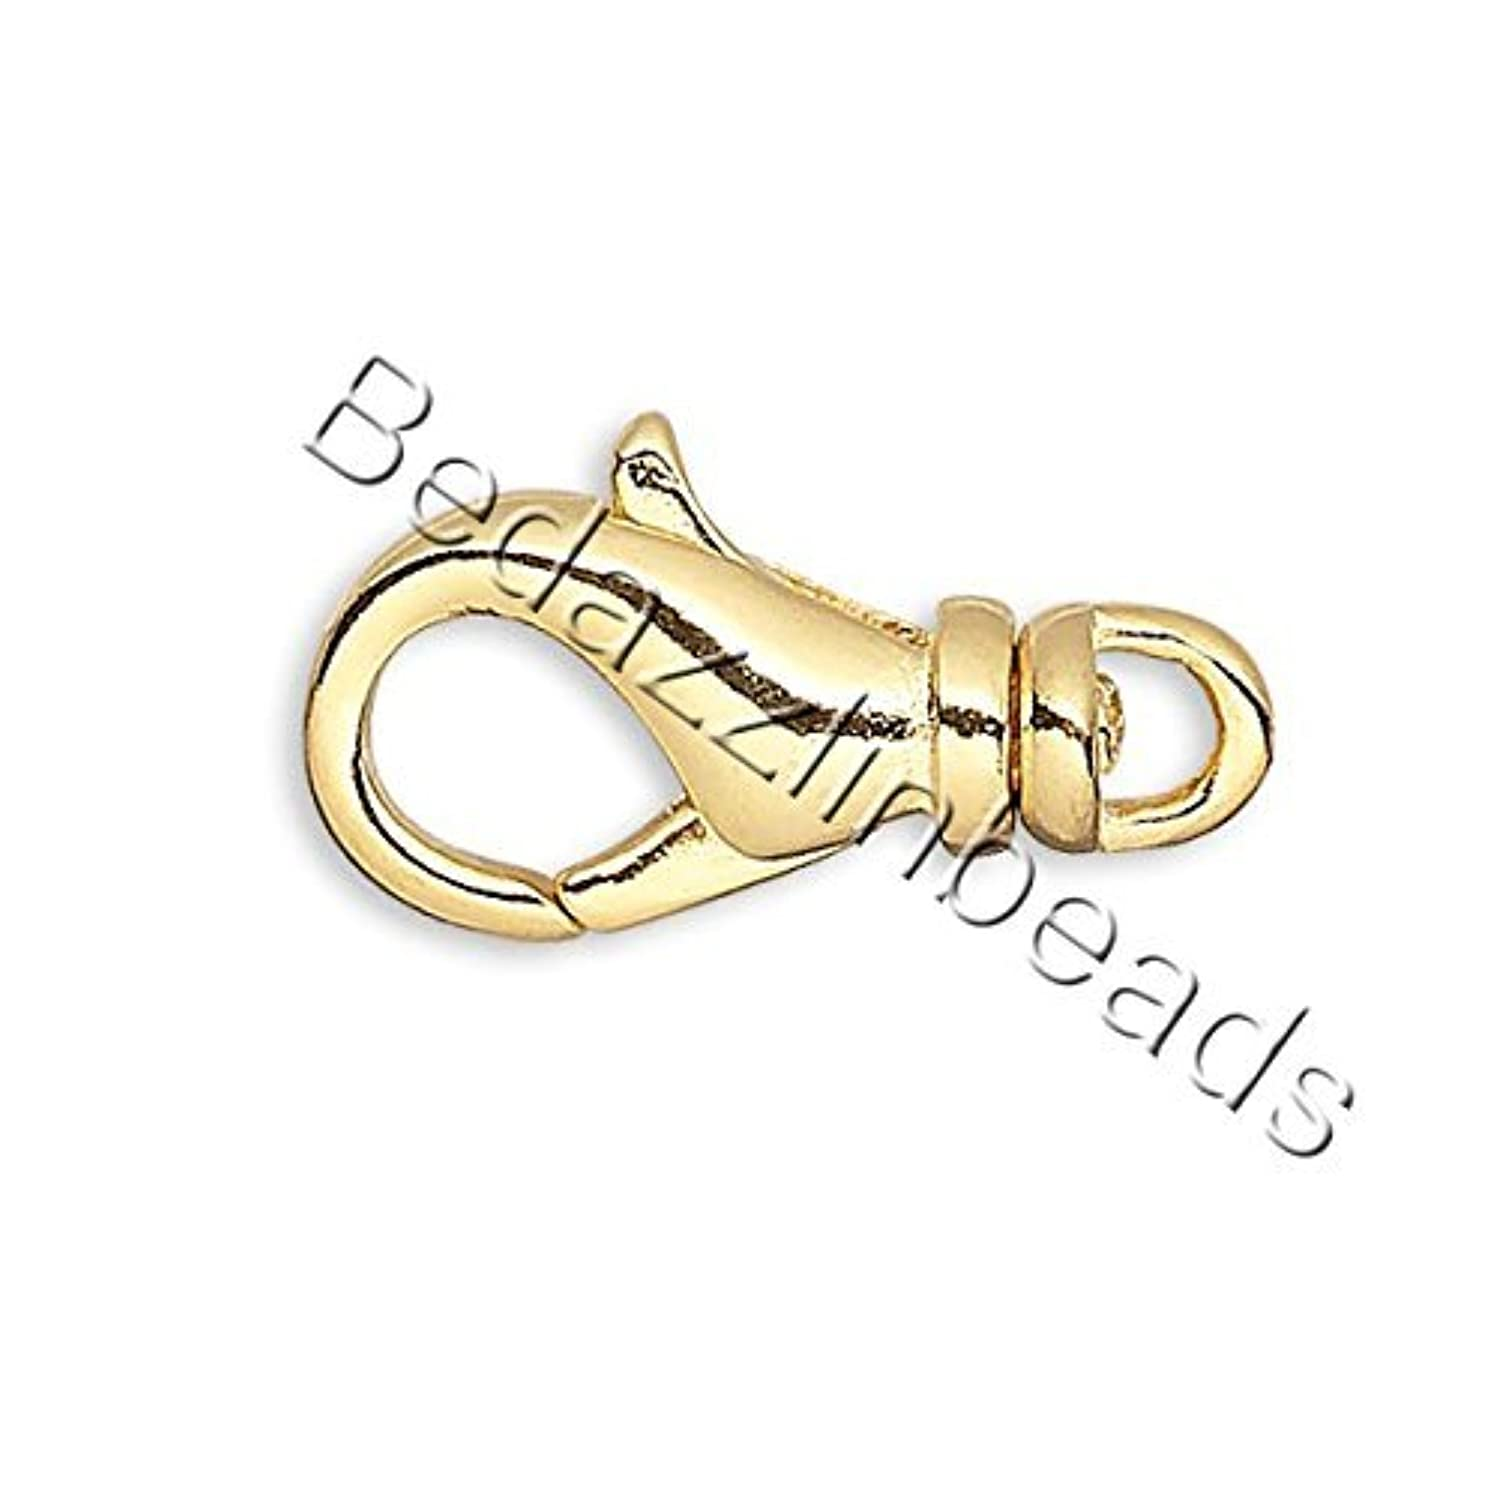 10 Plated 14mm Long Lobster Claw Trigger Clasps With Swivel for Jewelry (Gold)